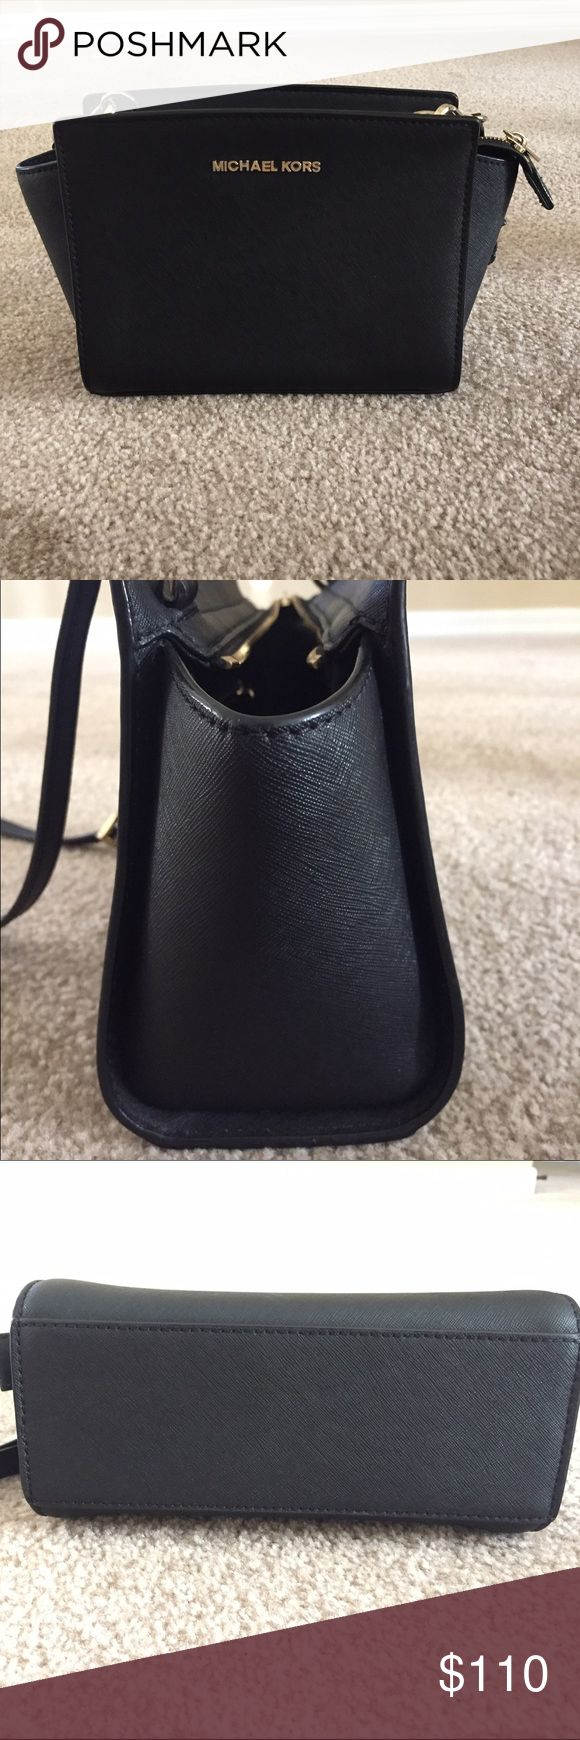 Michael Kors Selma Medium Black Crossbody Handbag Popular Selma in an excellent condition. Small scratches on the hardware. No sign of wear on the leather Michael Kors Bags Crossbody Bags